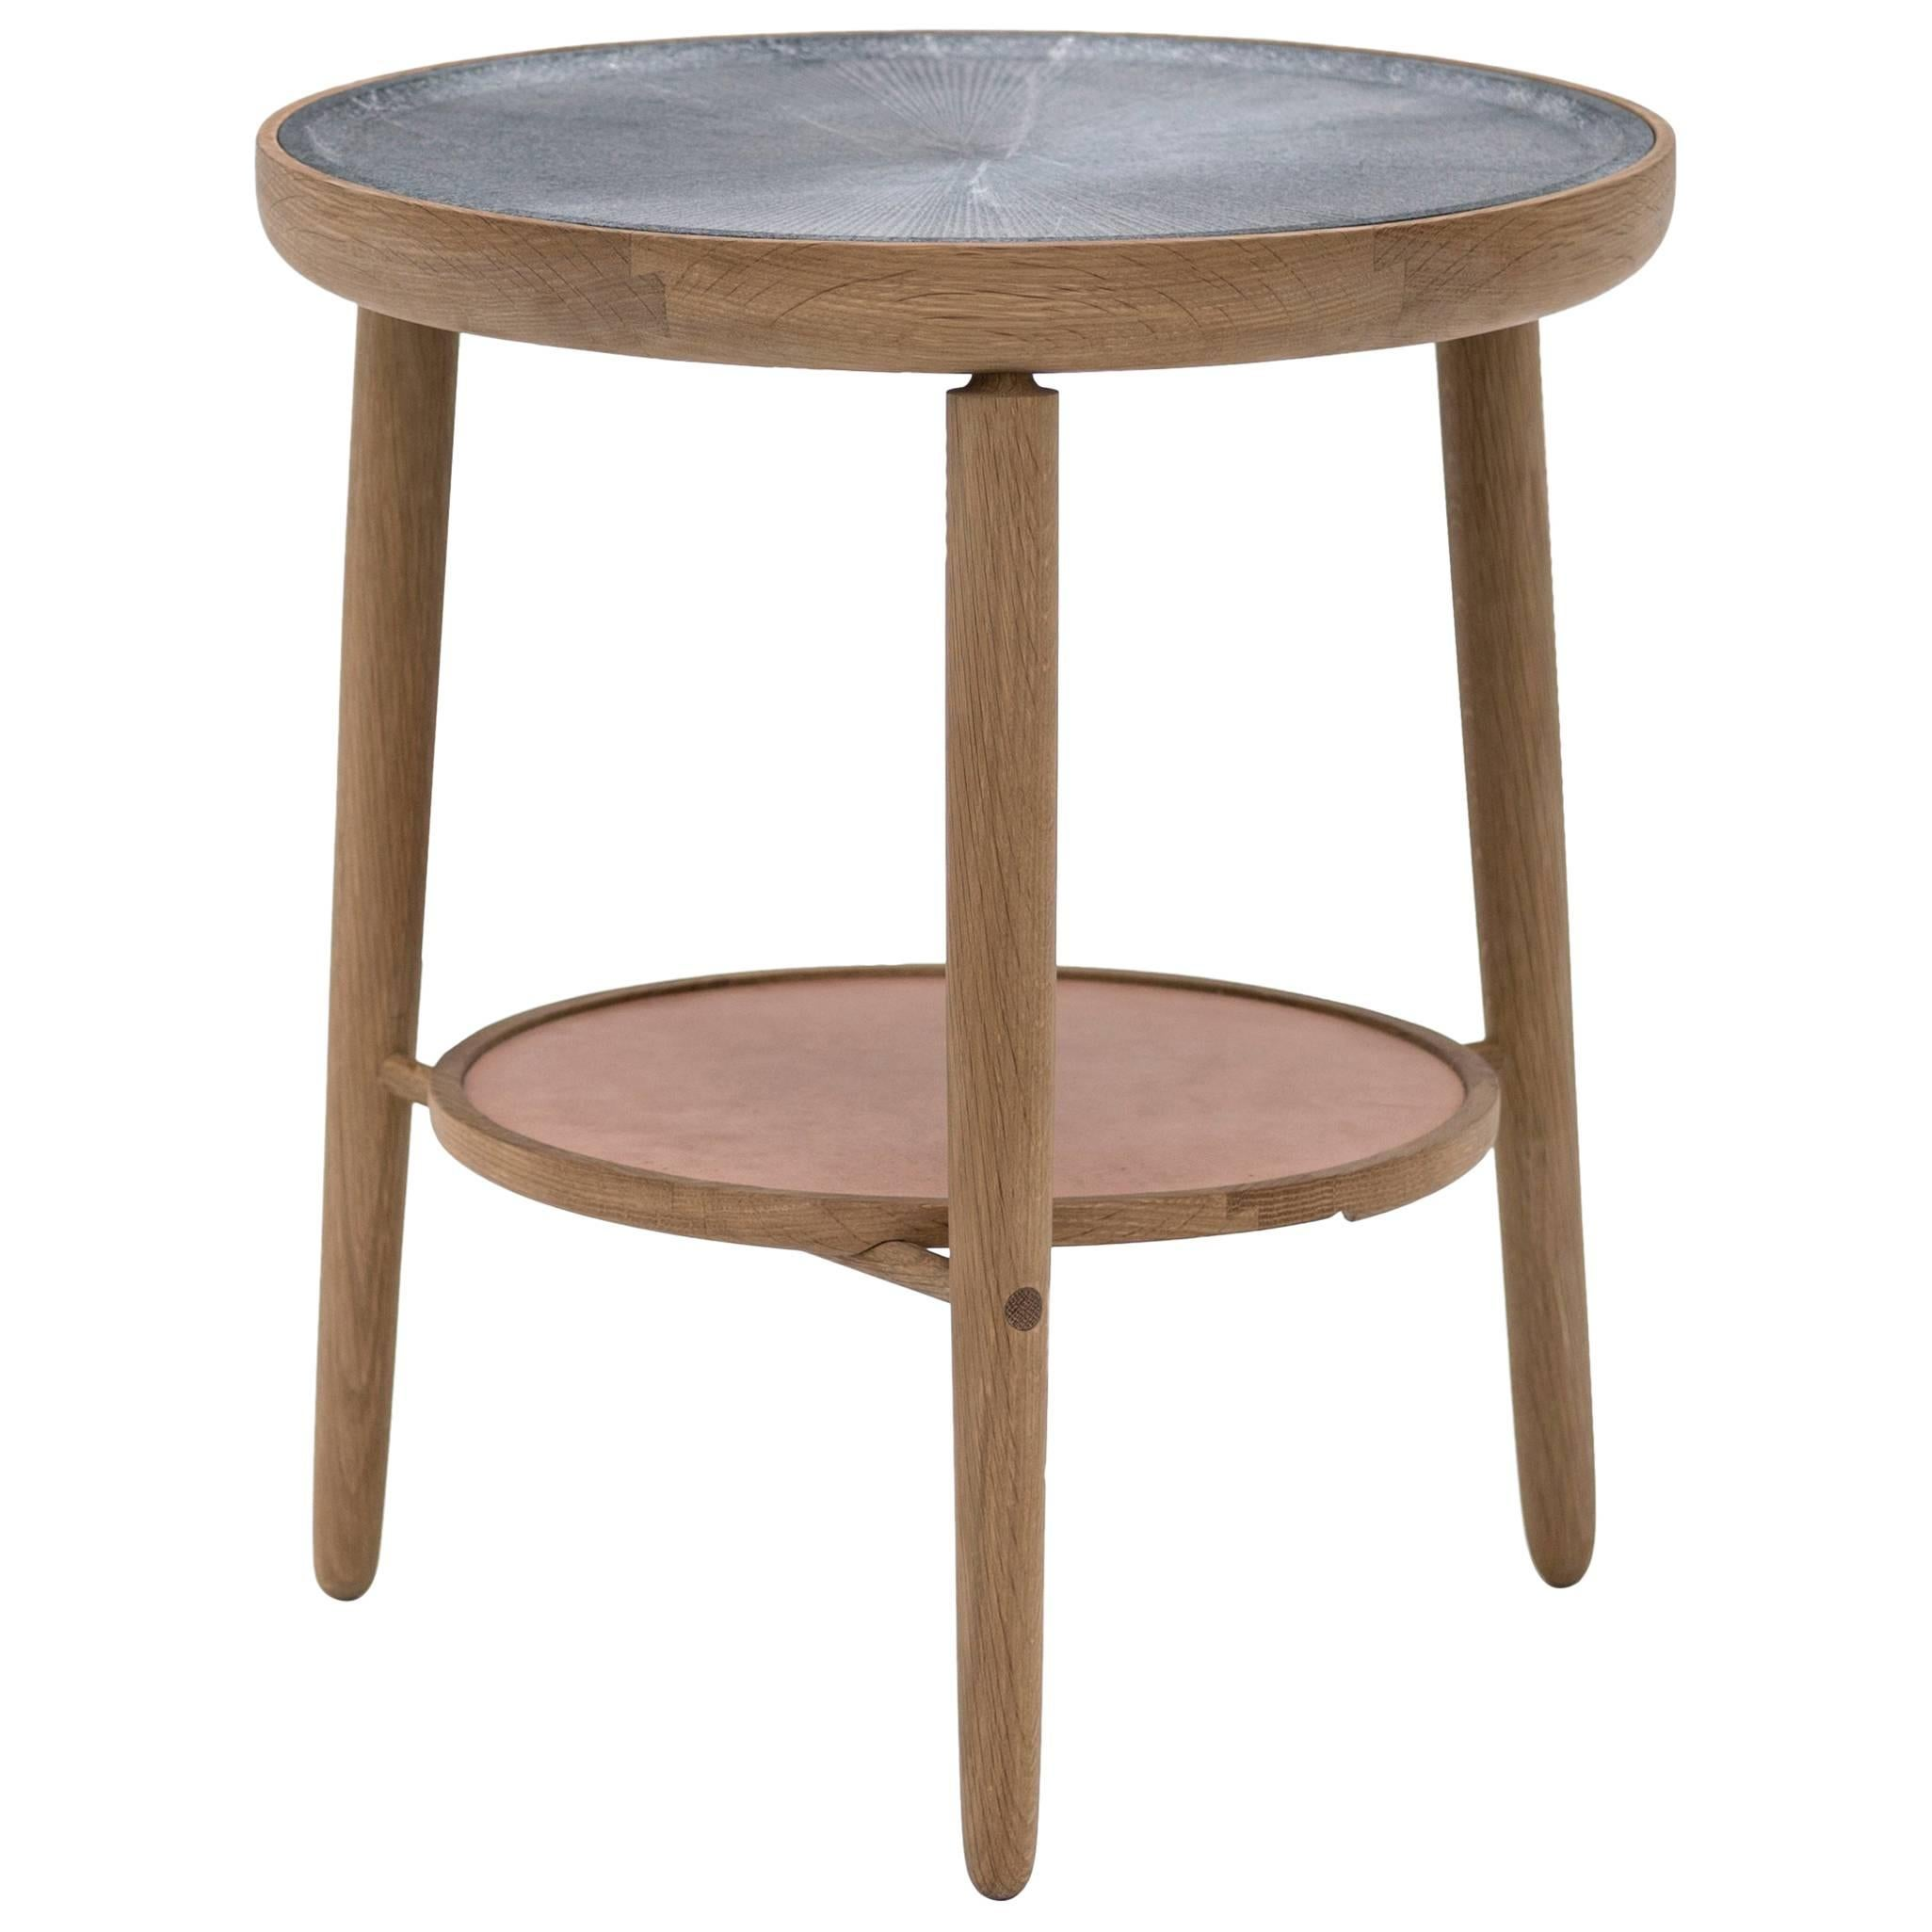 Baré Side Table, Solid White Oak Base with Carved Soapstone Top and Leather Tray